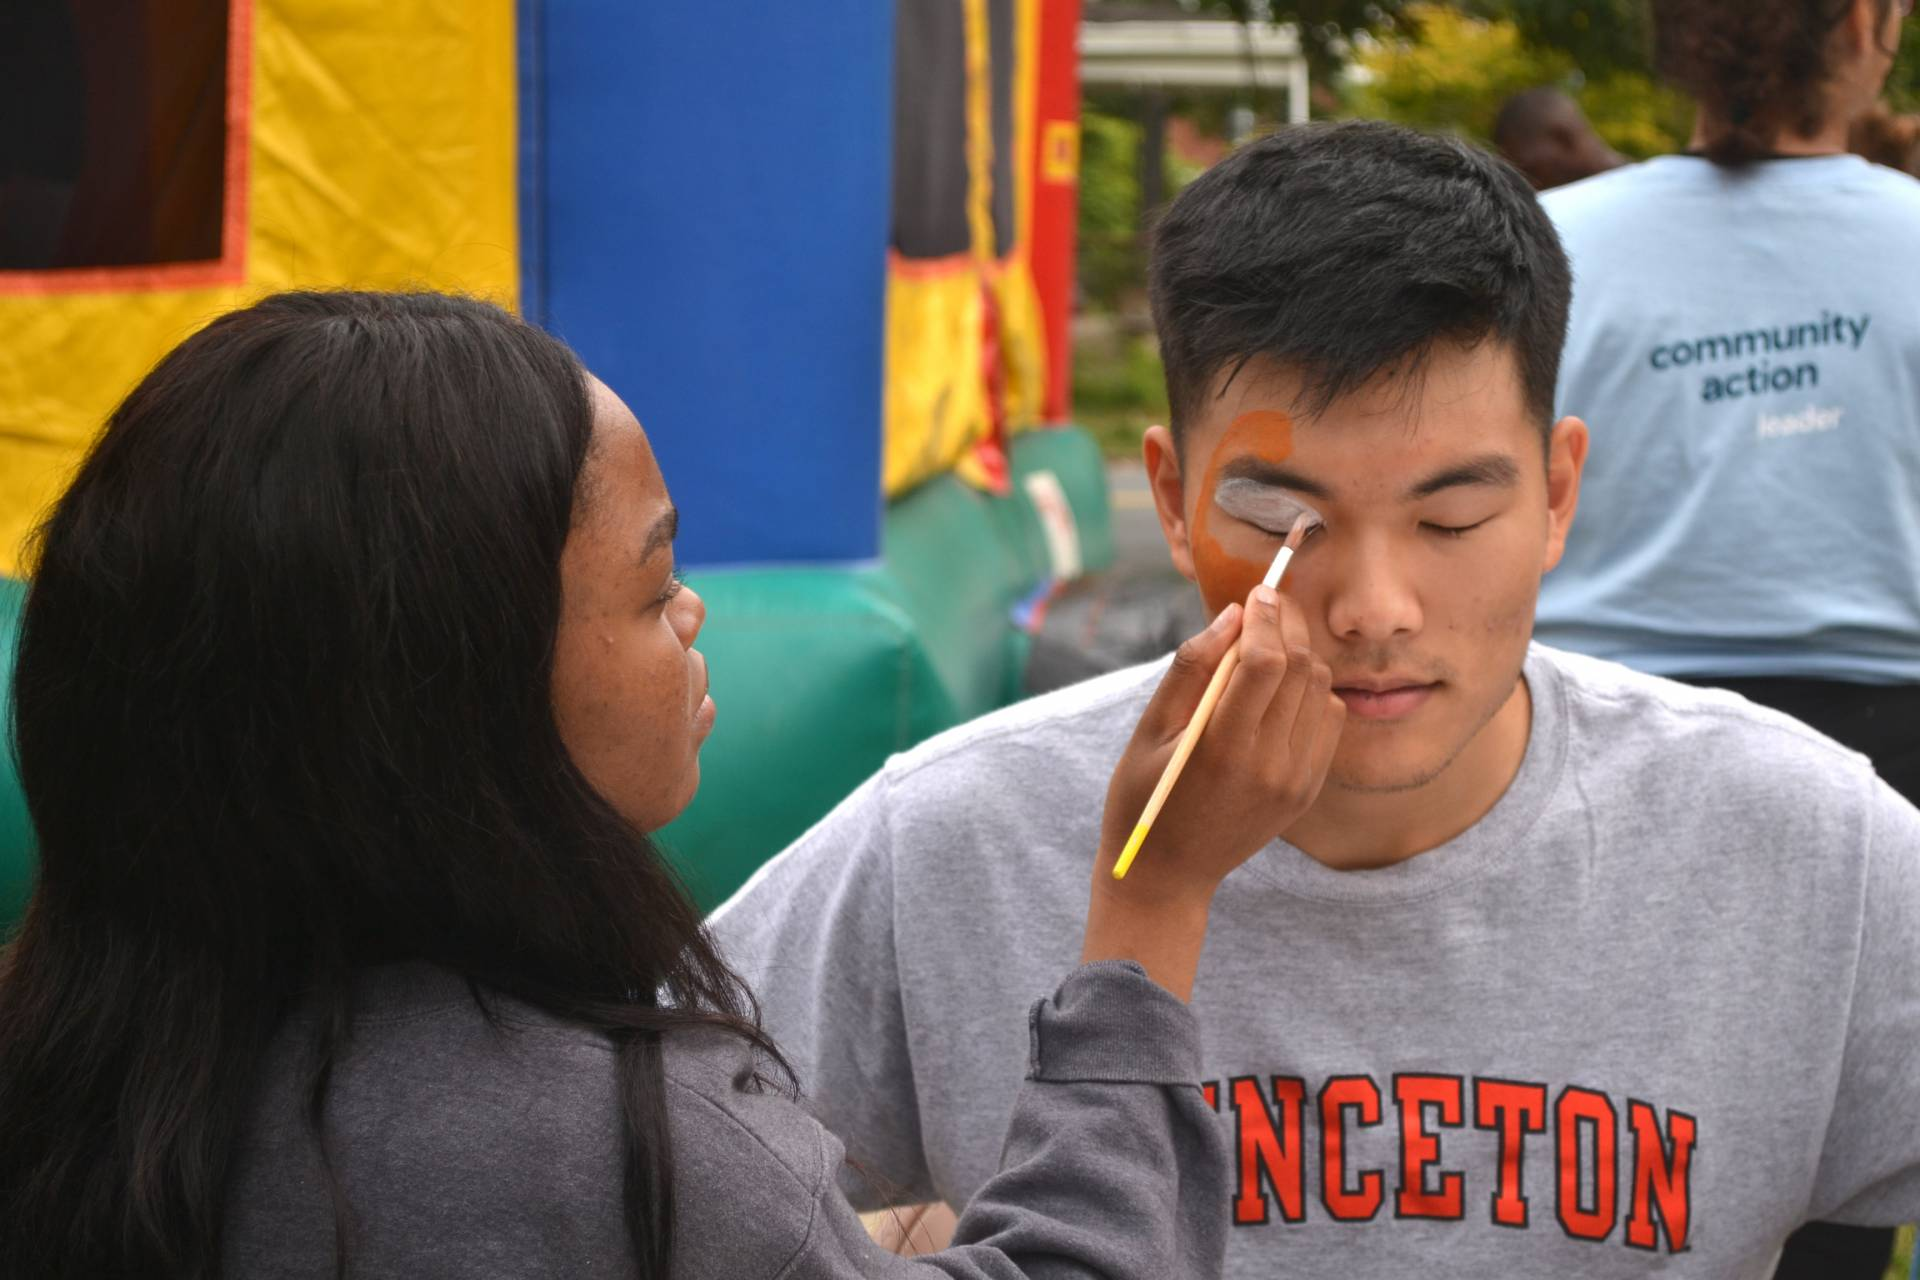 A student applies face paint on another student